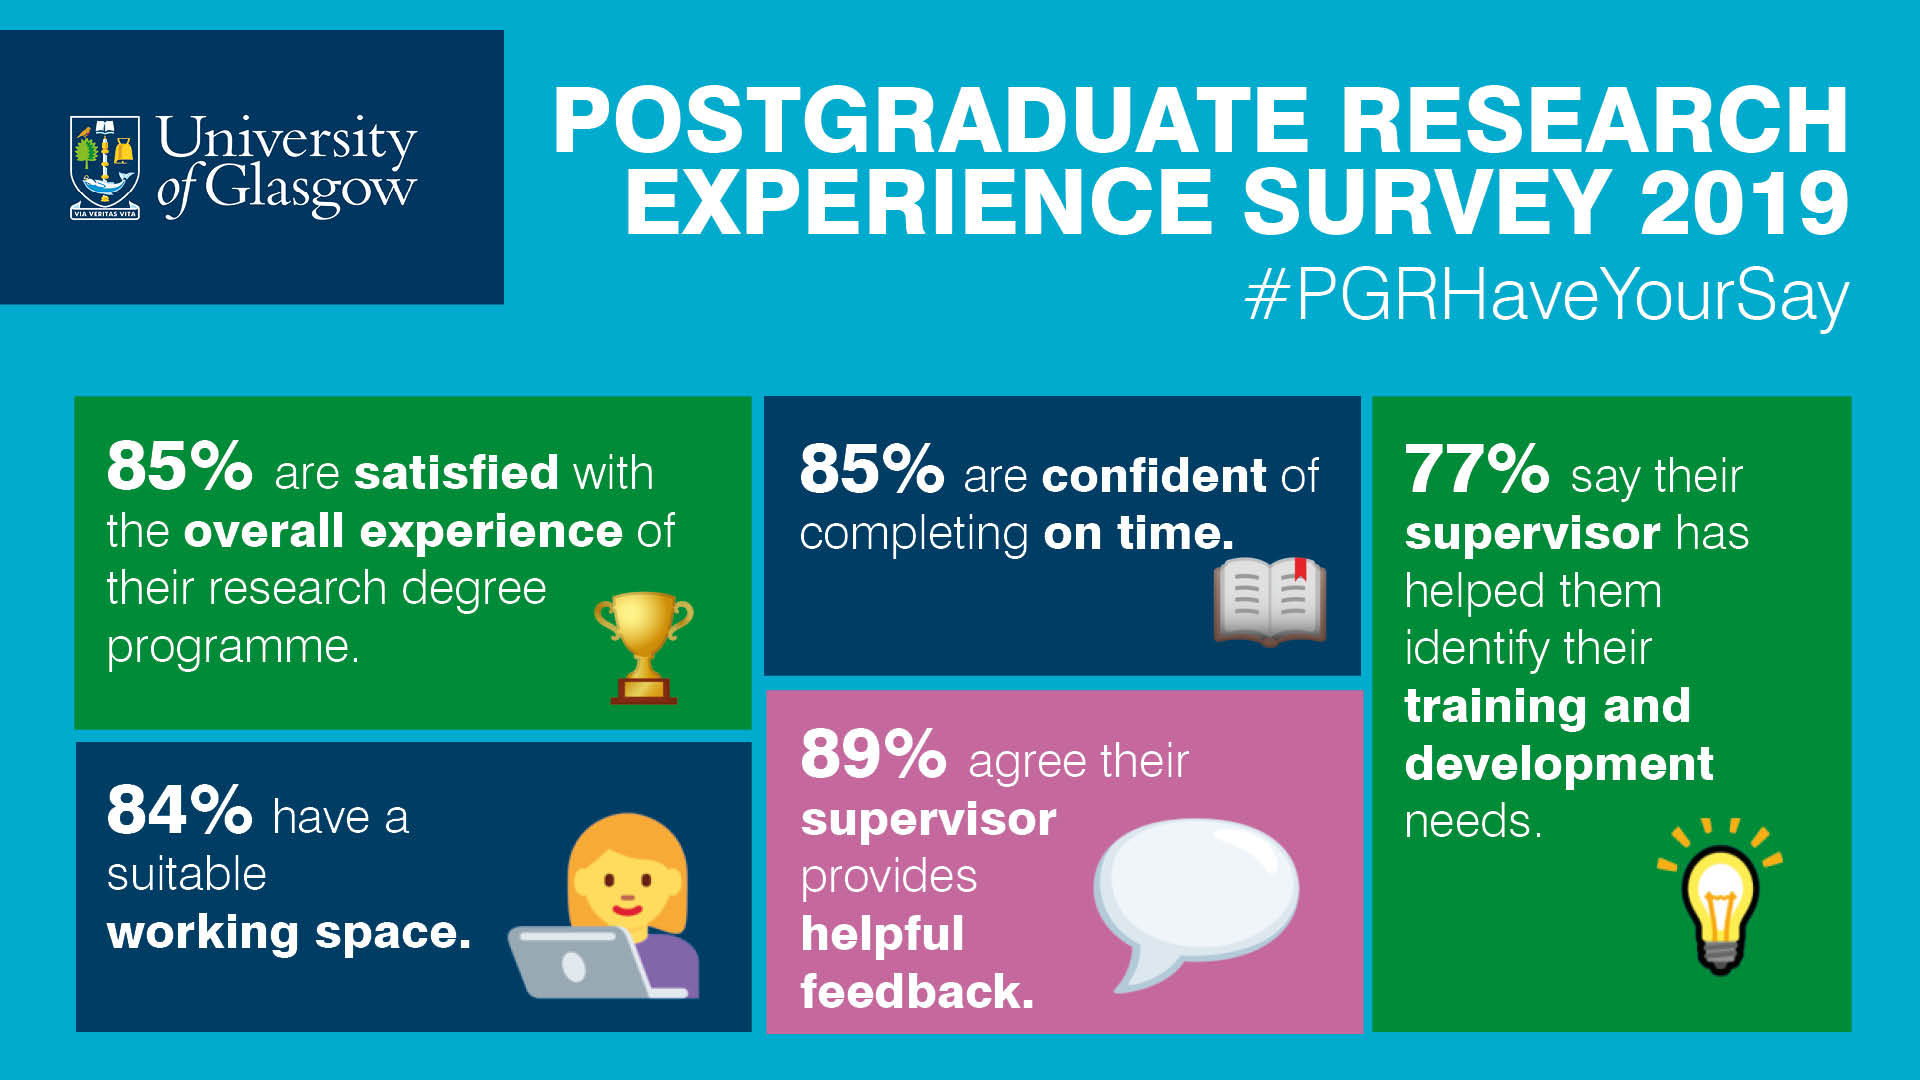 Infographic of some of the PRES survey results. 85% are satisfied with the overall experience of their research degree program. 85% are confident of completing on time. 77% say their supervisor has helped them identify their training and development needs. 84% have a suitable working space. 89% agree their supervisor provides helpful feedback.